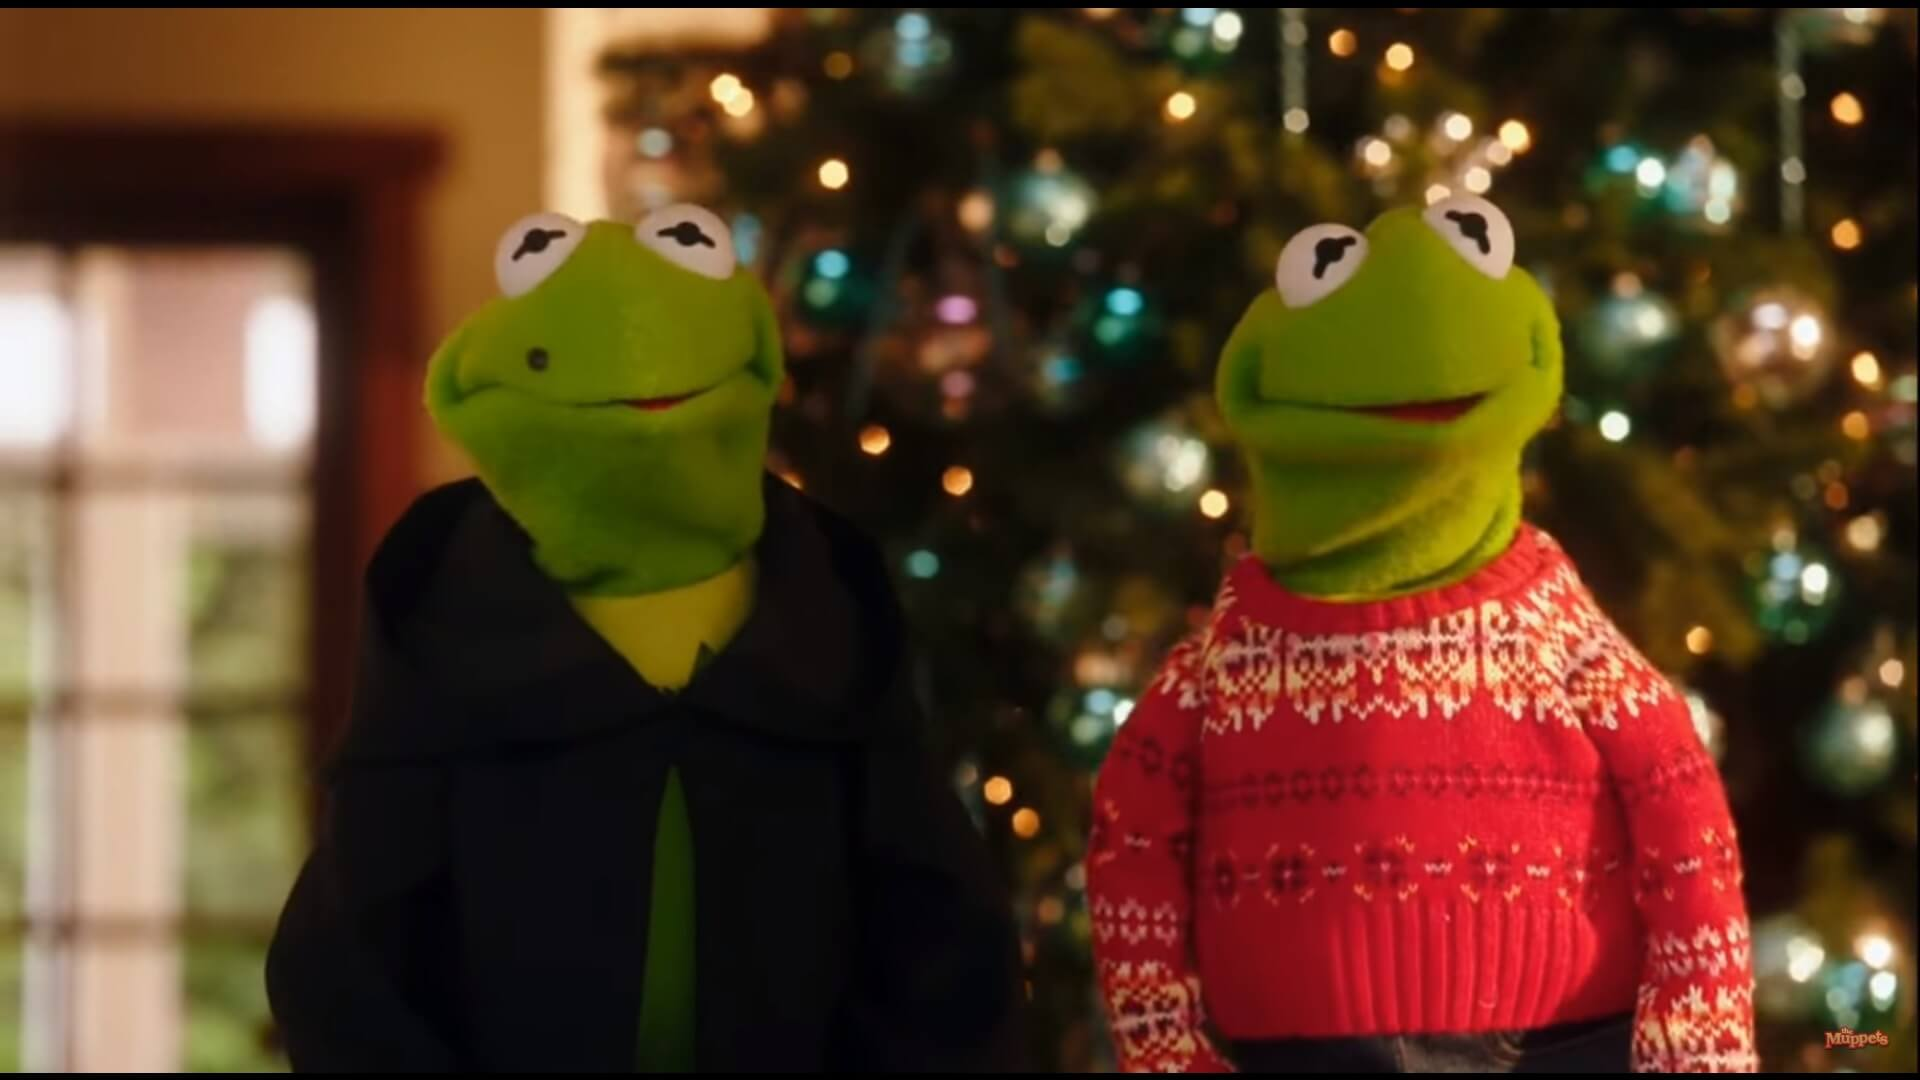 VIDEO - Kermit the Frog reunites with \